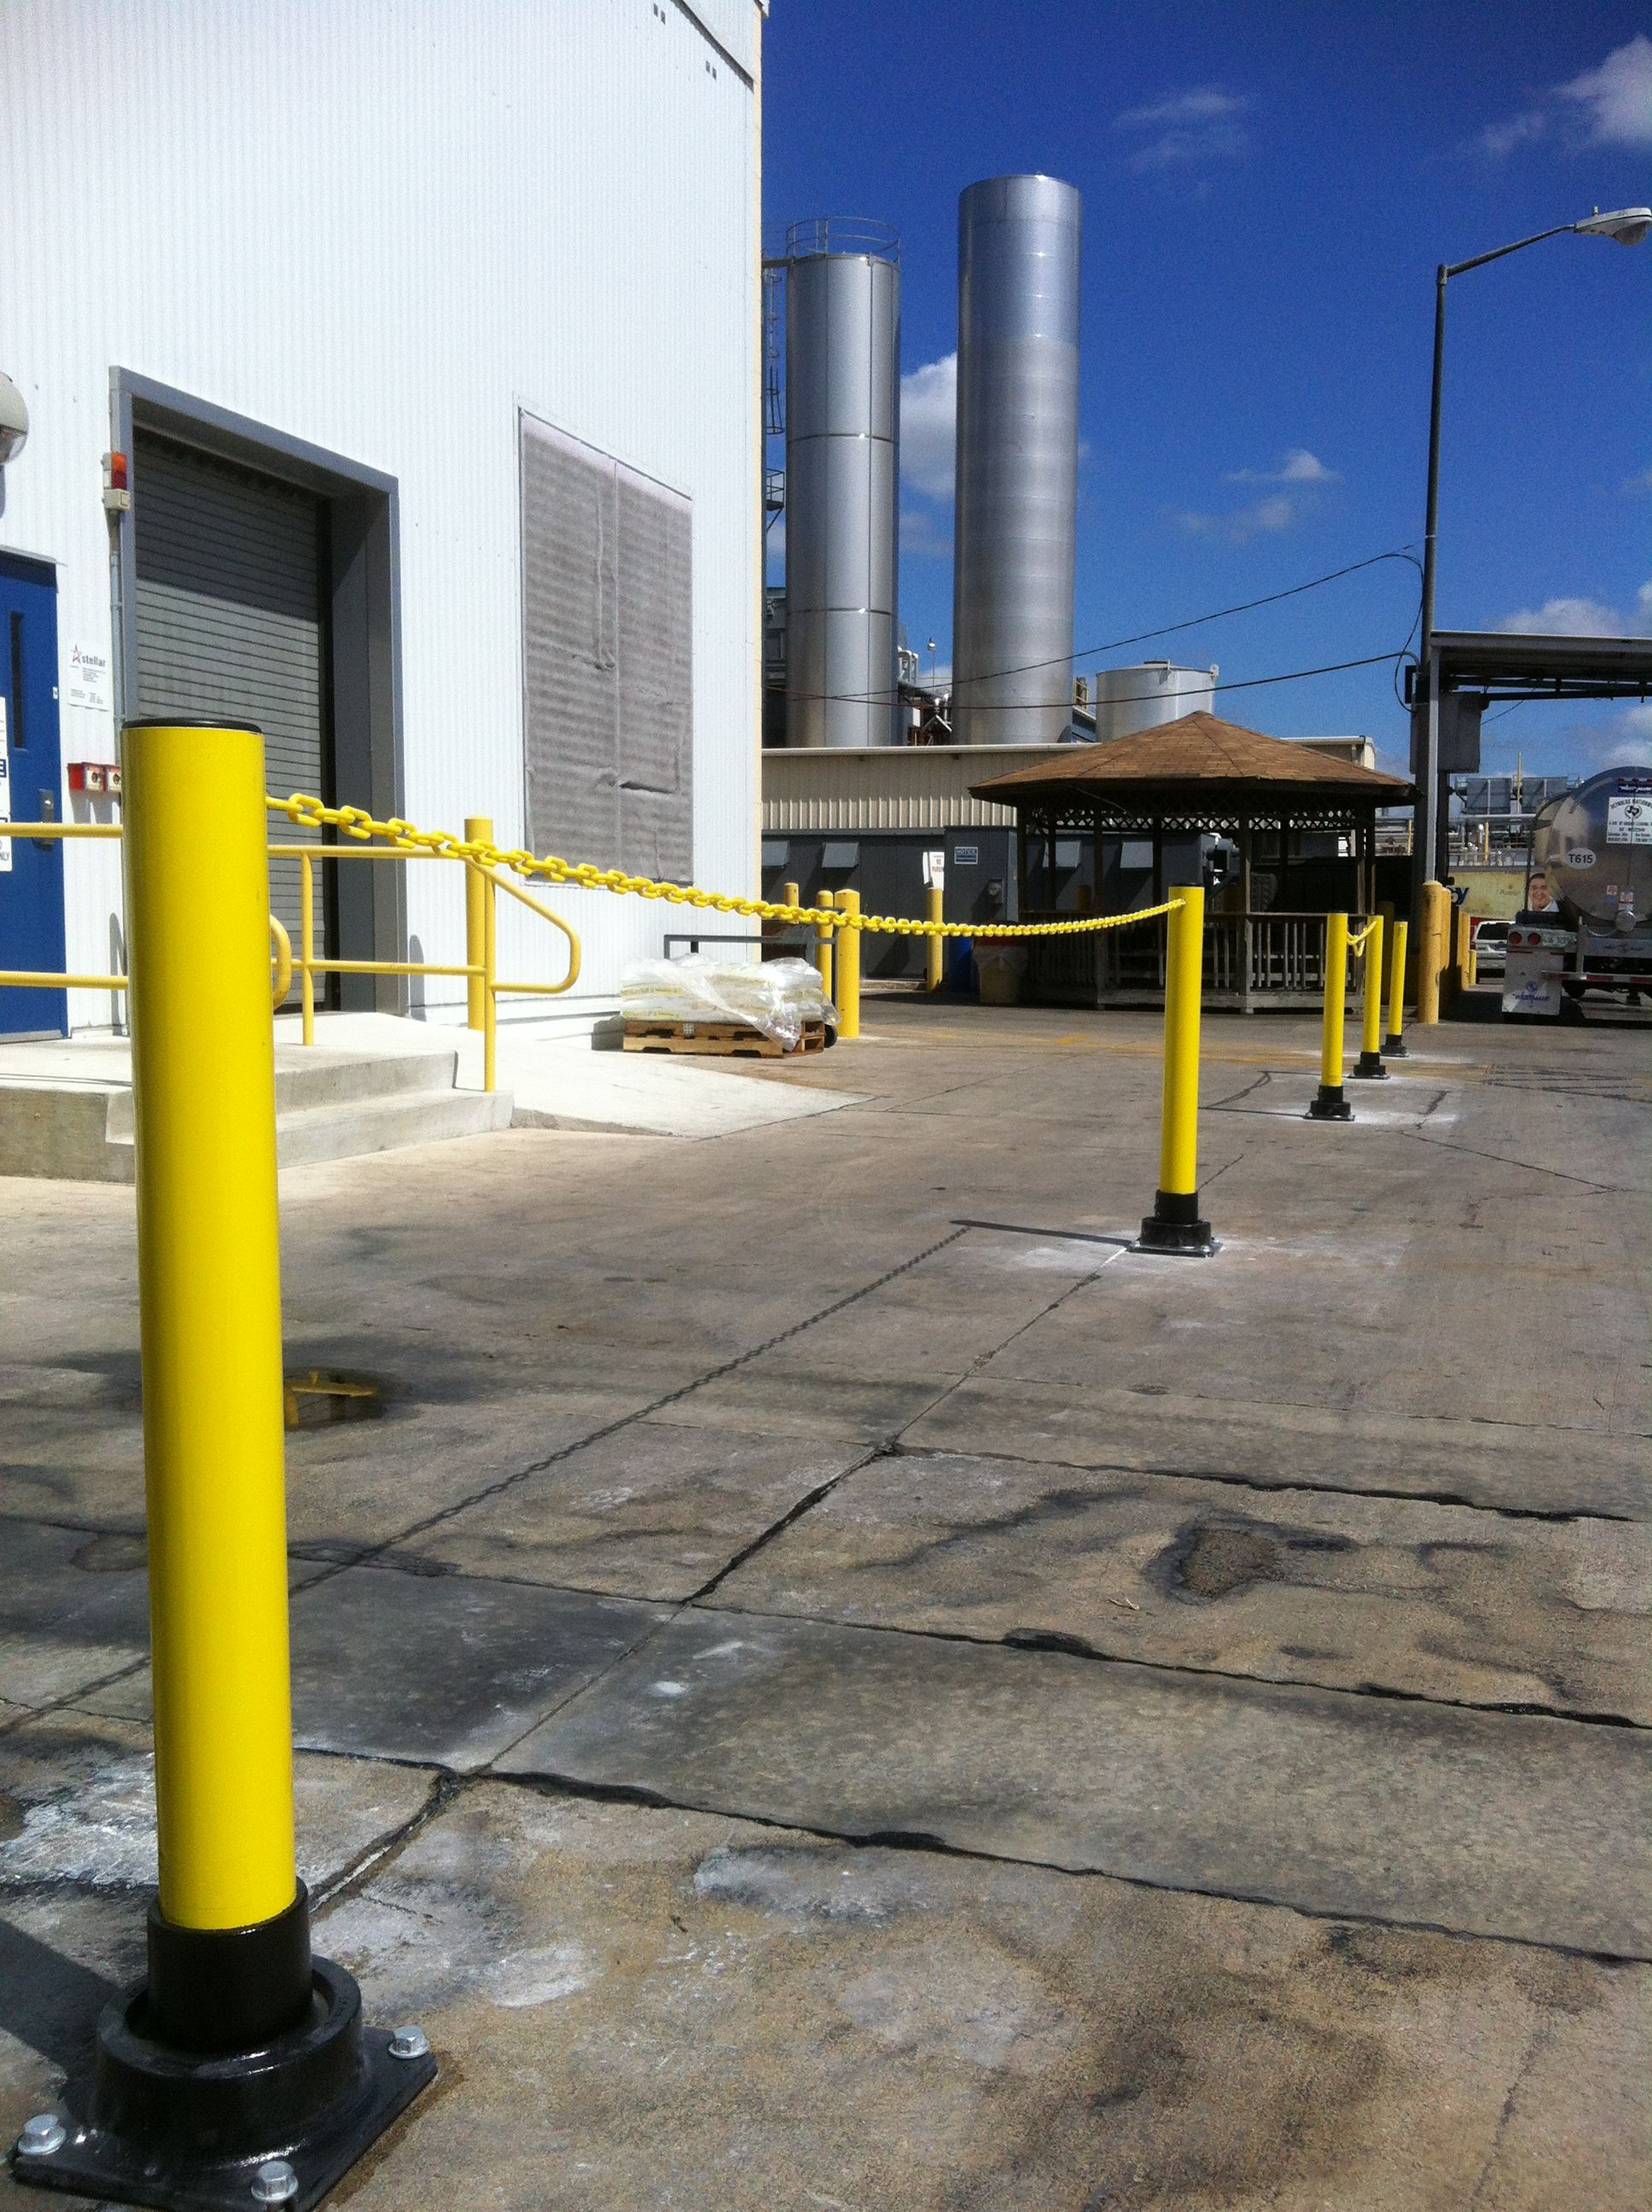 hight resolution of heb warehouse in san antonio tx became a recent fan of slowstop bollards this installation shows chains connecting the bollards together to create a